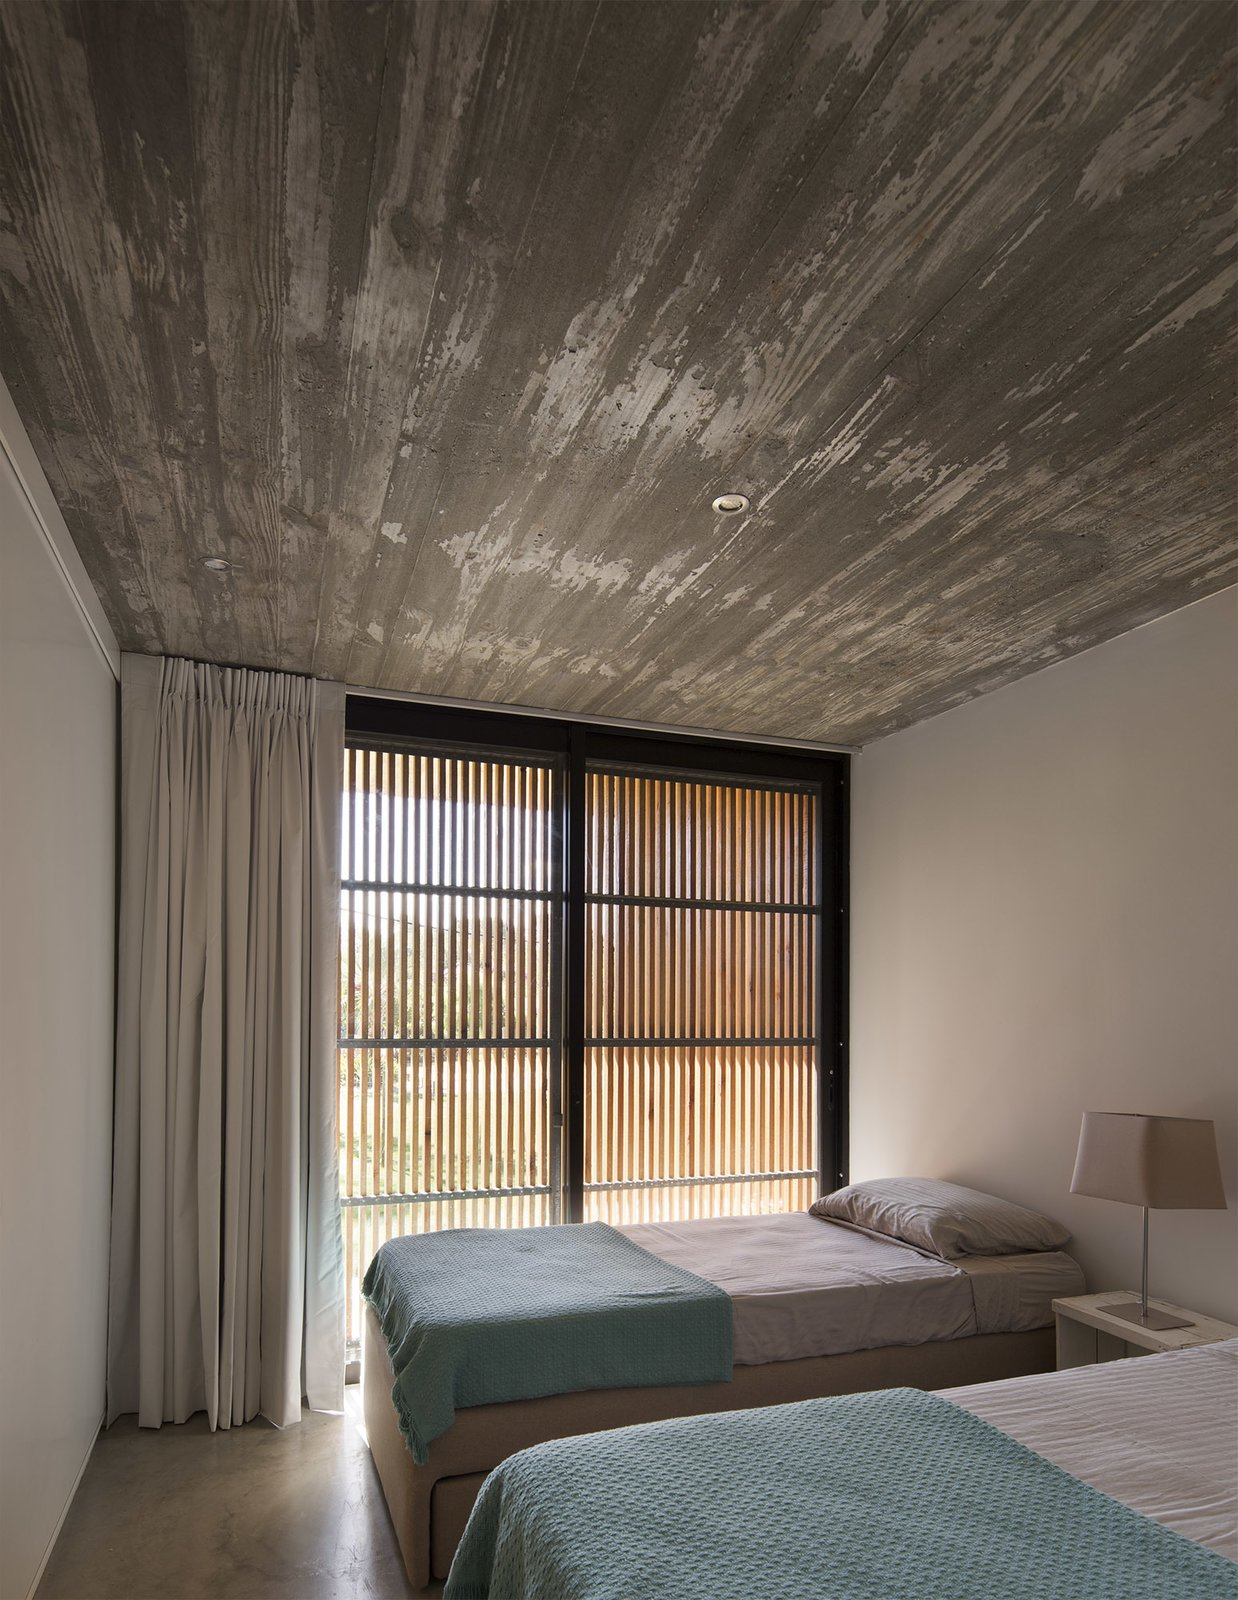 Bedroom, Bed, Ceiling Lighting, and Concrete Floor  MARINDIA HOUSE